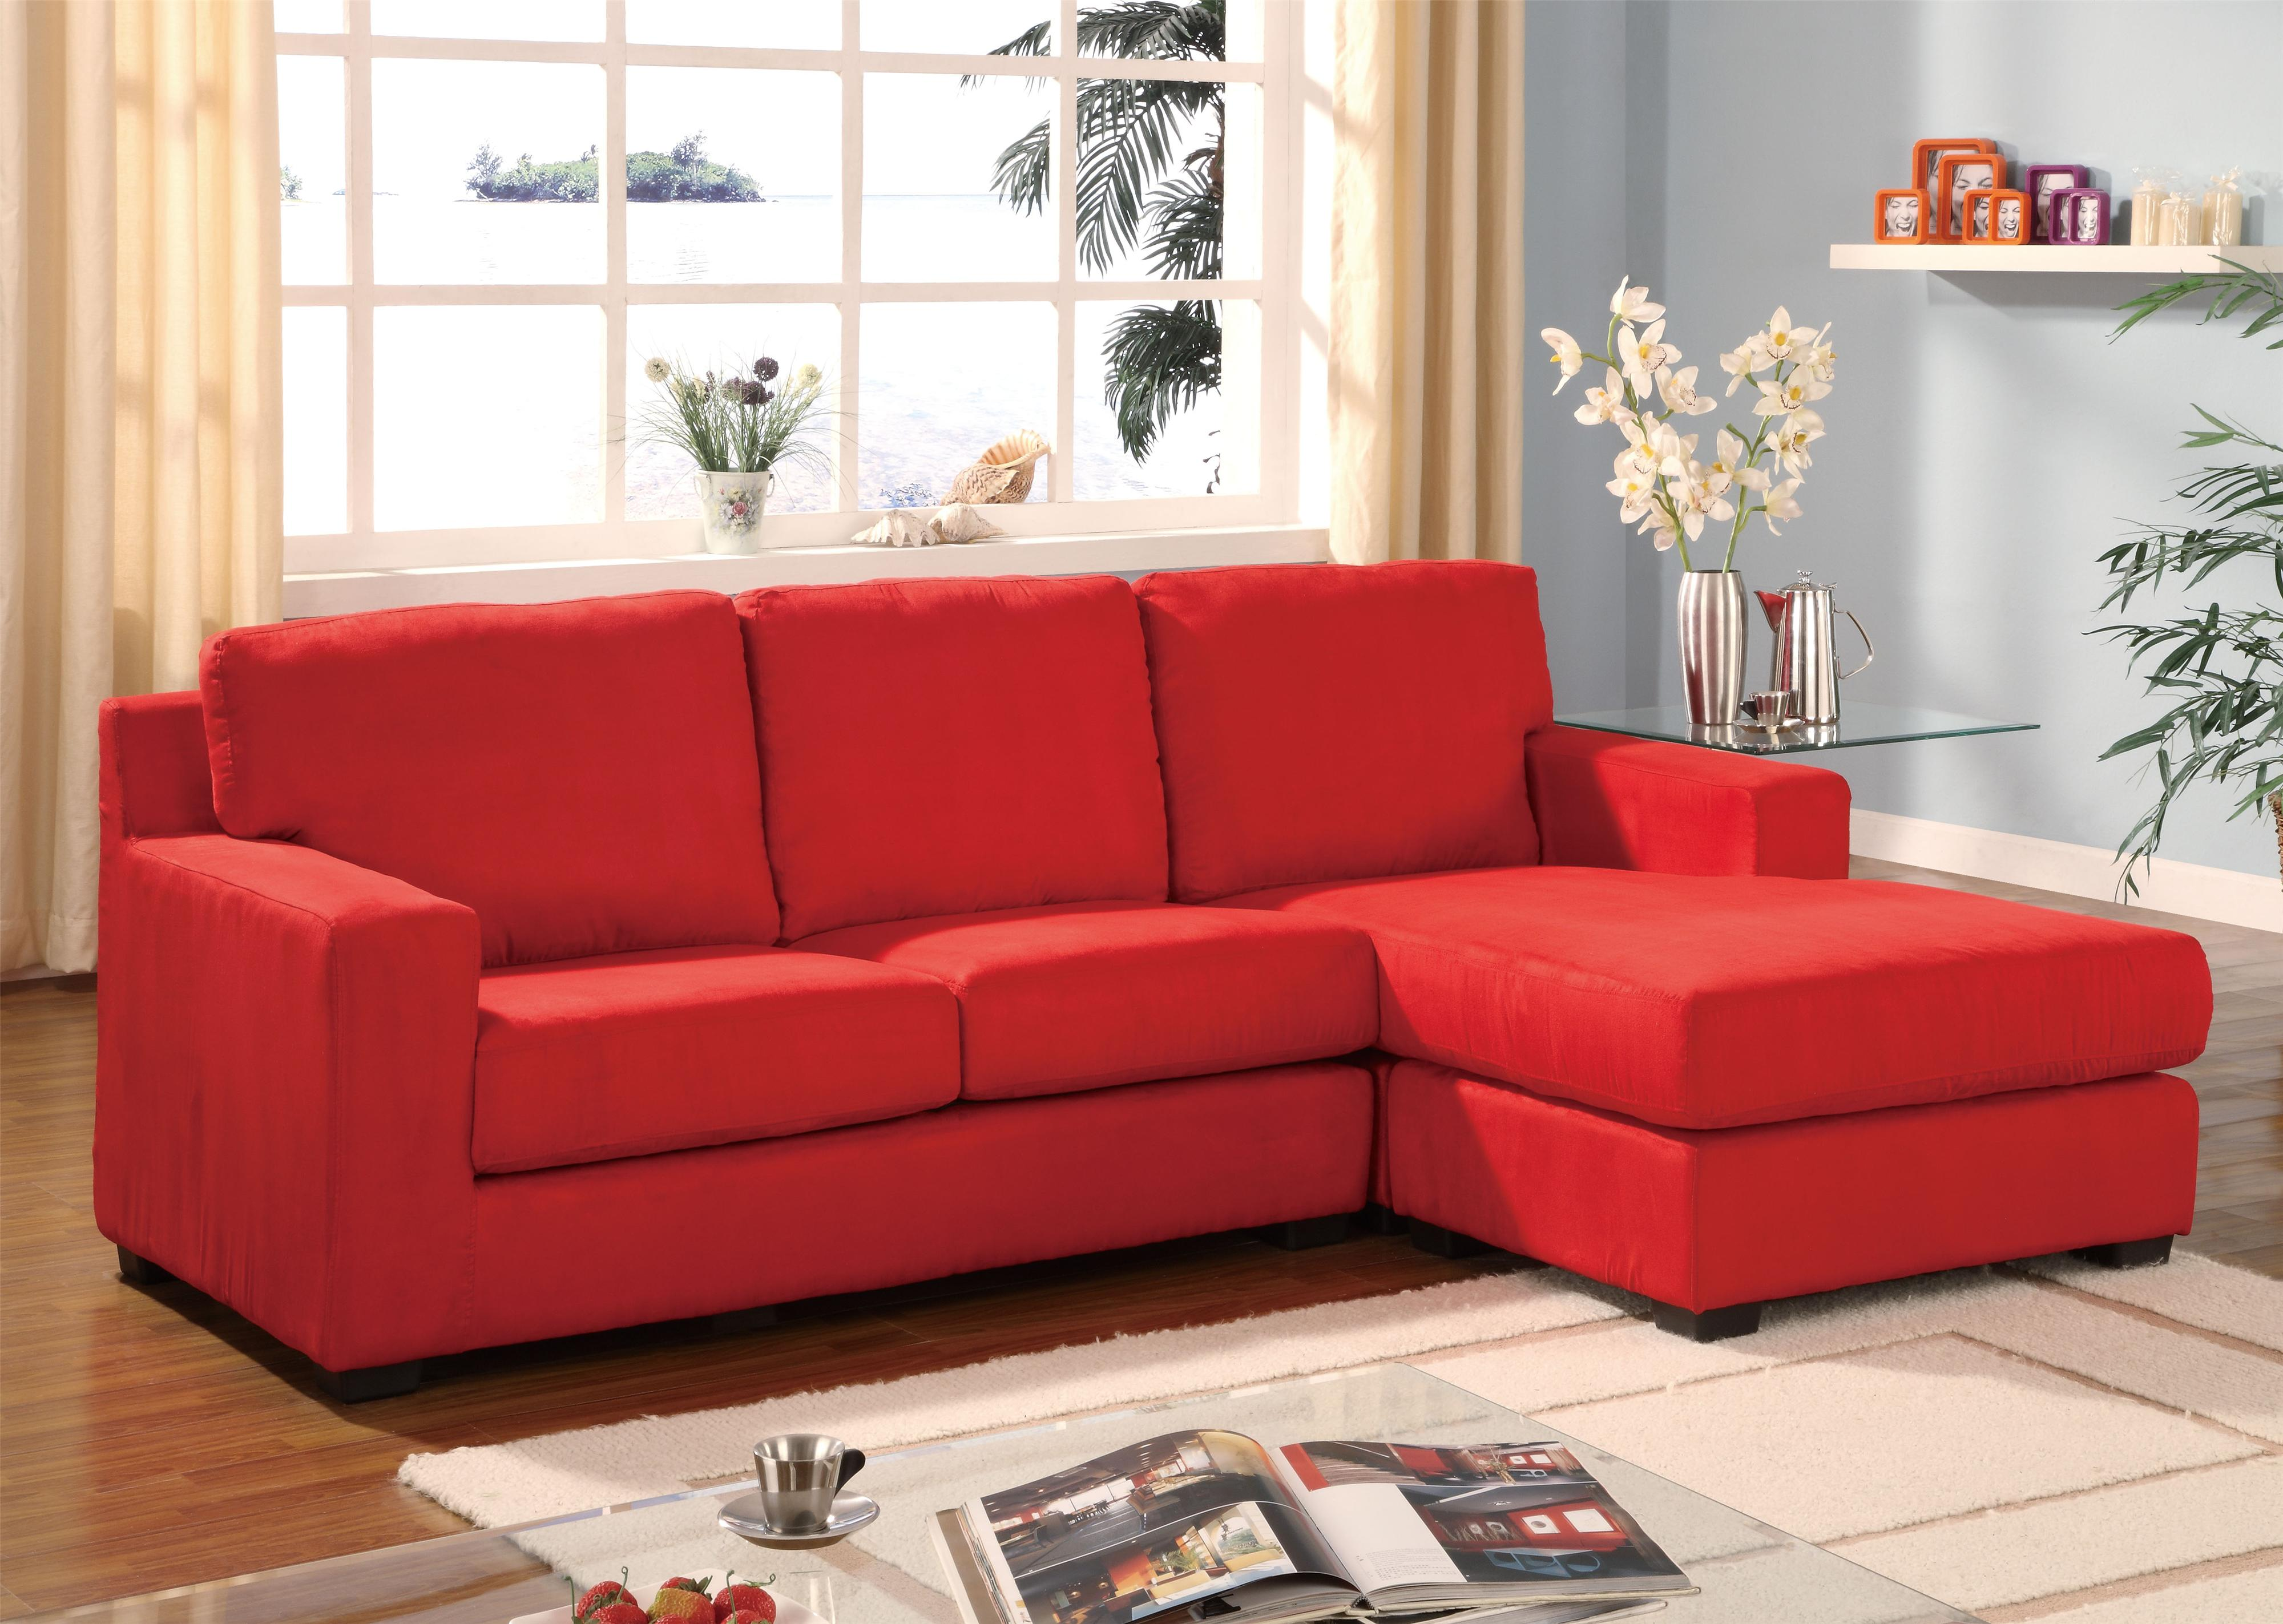 Acme Furniture Sectionals Sectional Sofa - Item Number: 5917 RAFC+5917 LAF